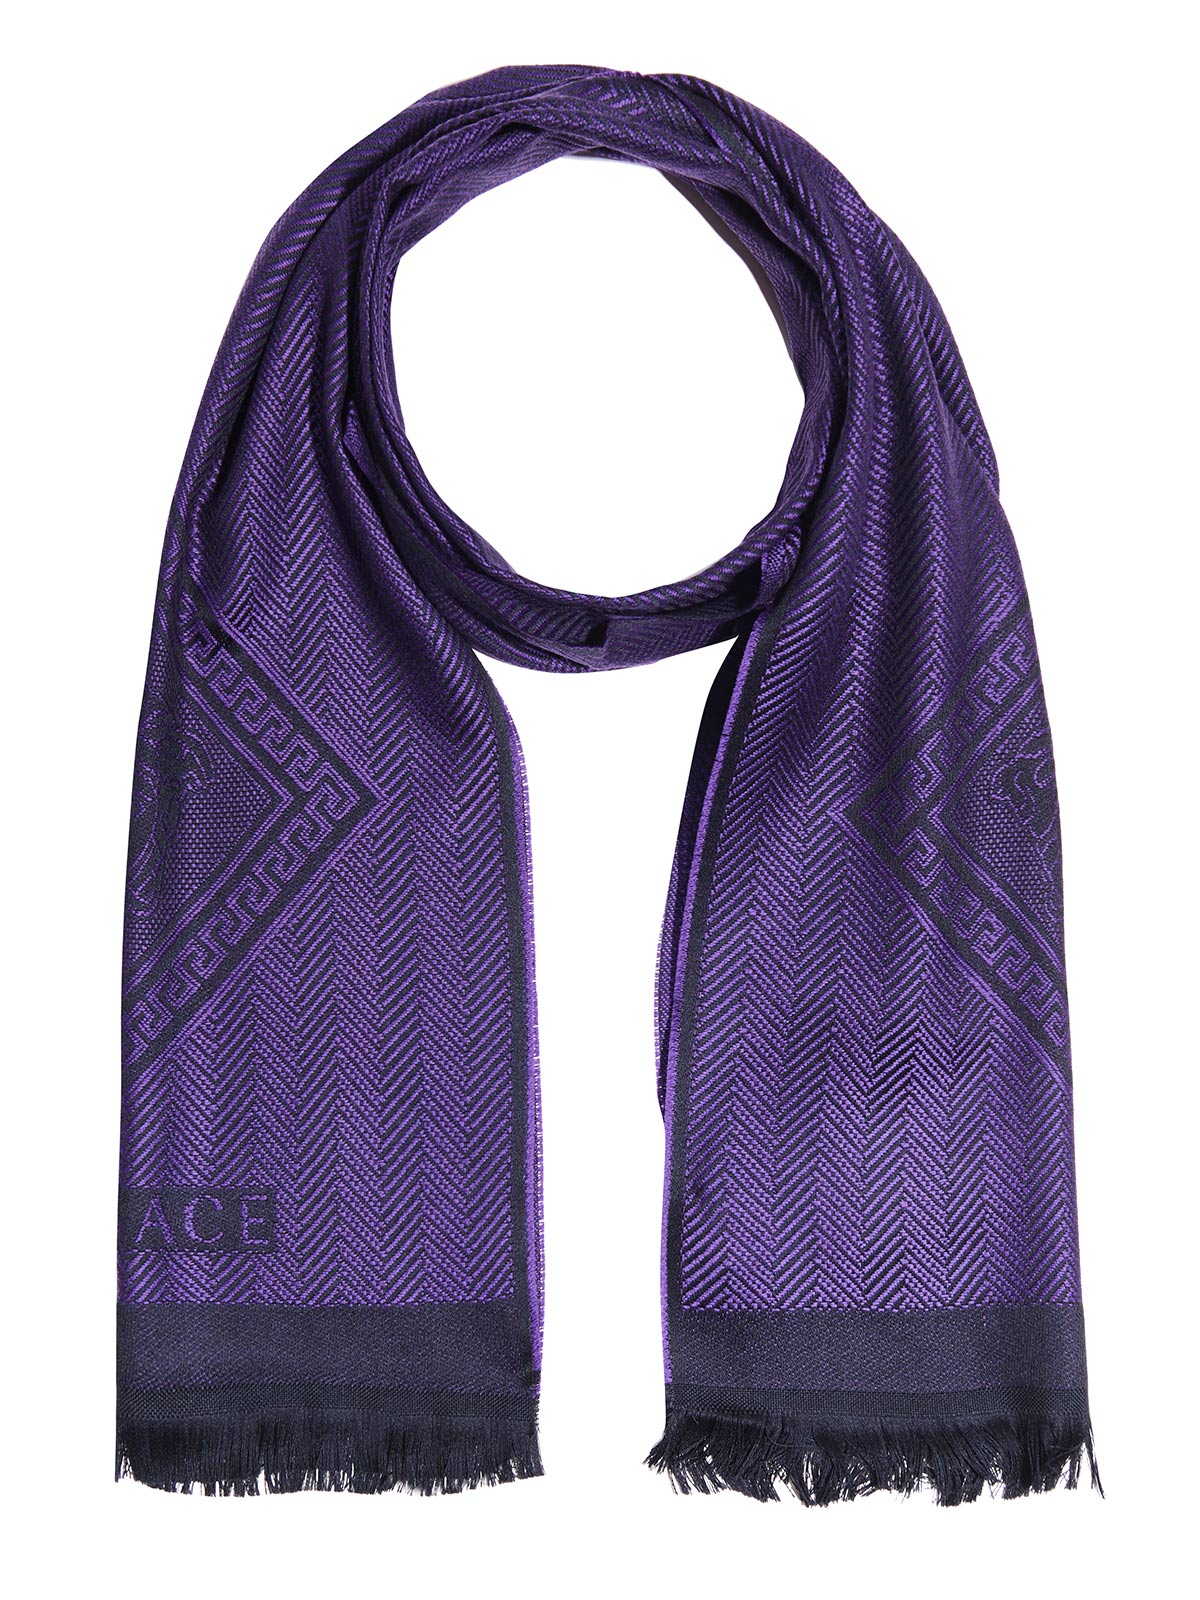 Versace Scarf, 180x36cm, Purple by Versace